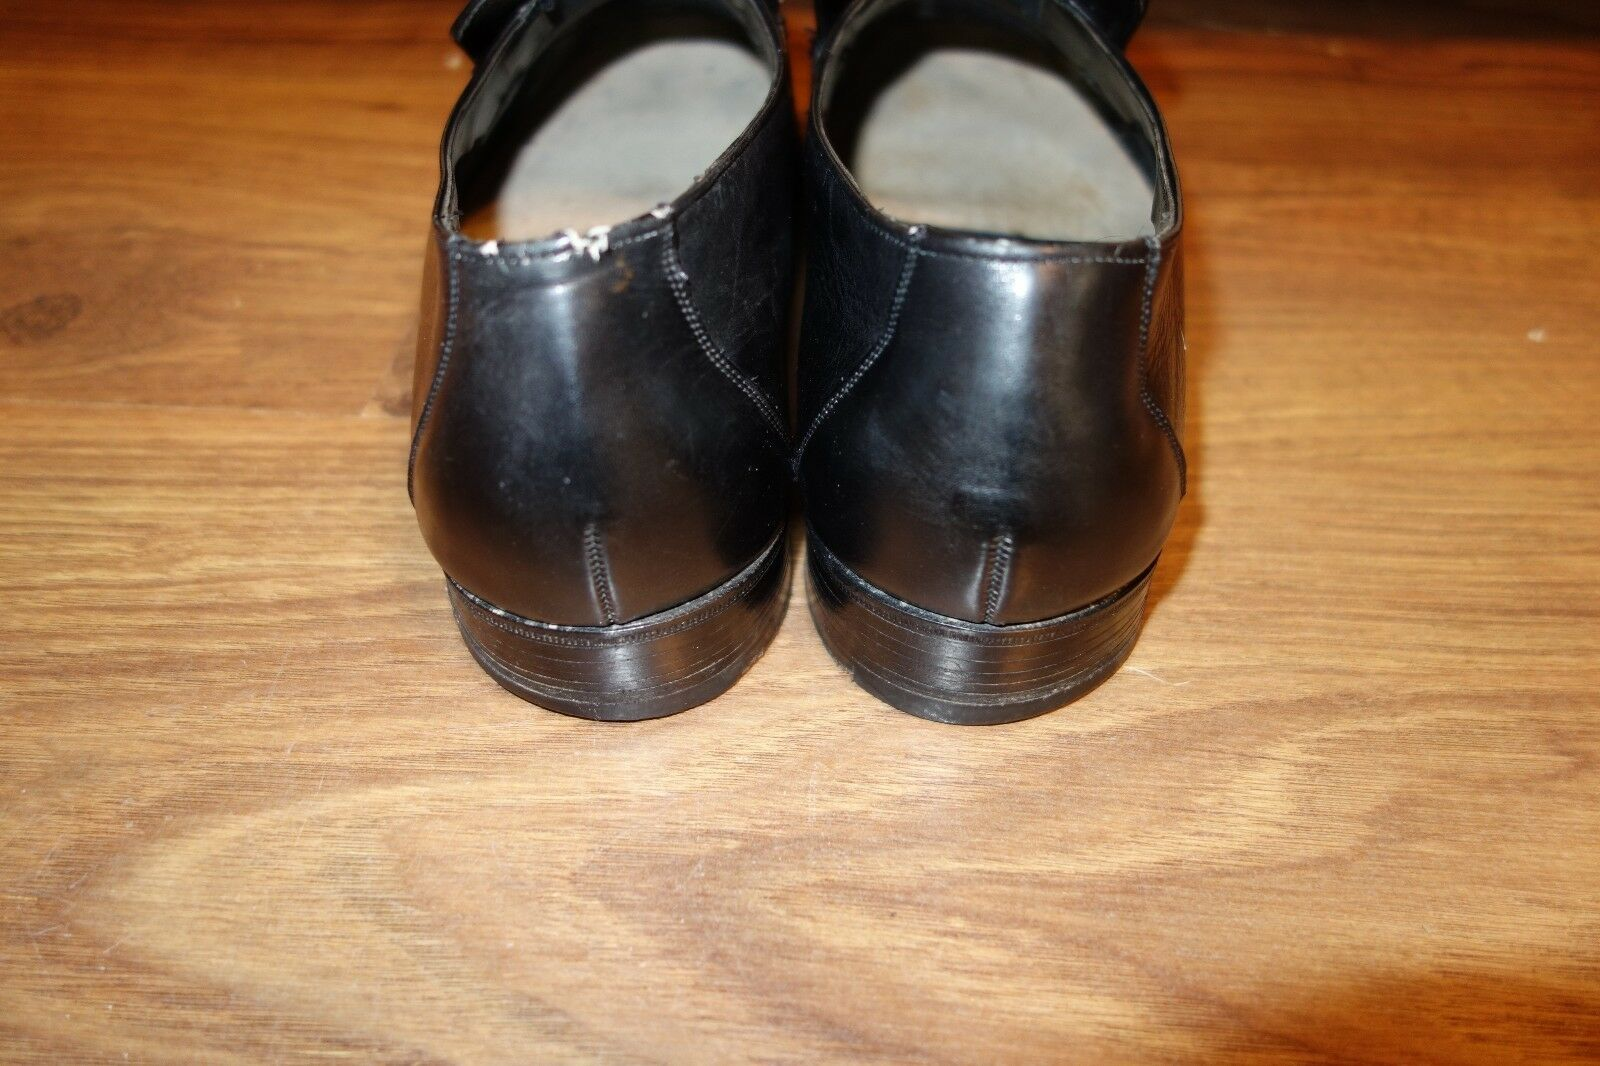 GREAT VINTAGE  CHURCH LOAFER, LEATHER BLACK, 9.5, SIZE UK 9, US 9.5, BLACK, EU 43, VERY GOOD 4701dd